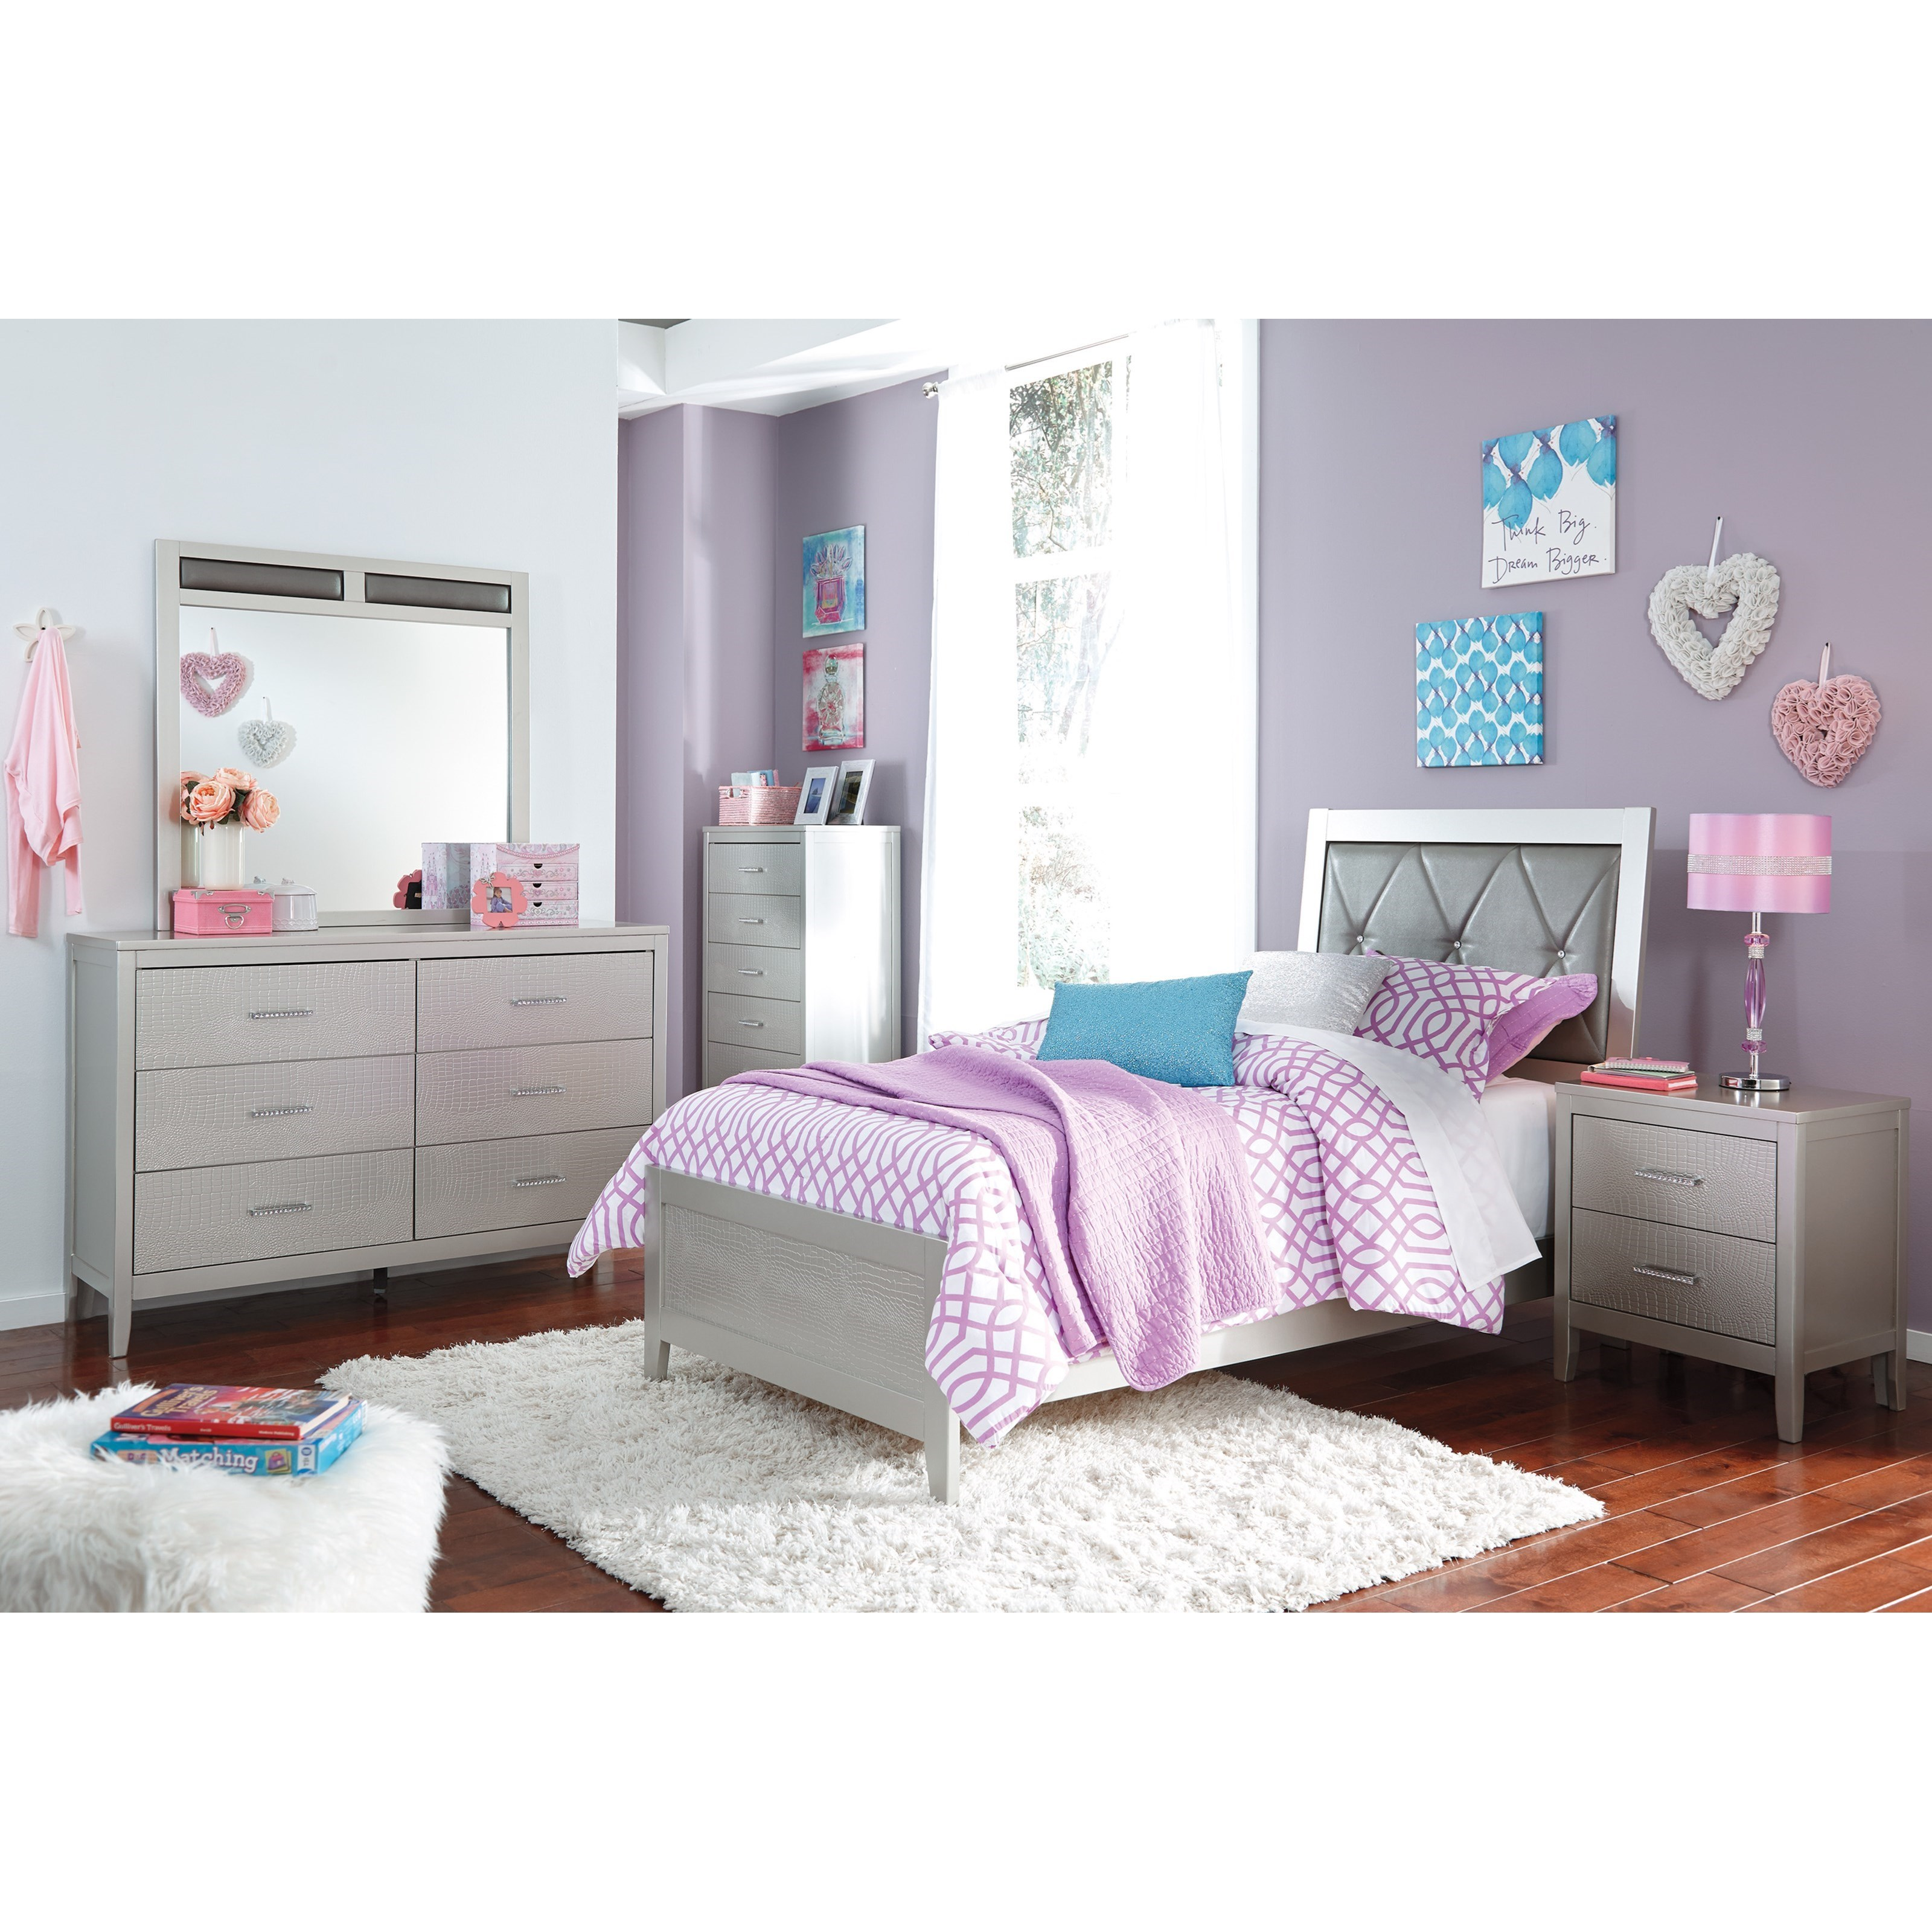 Olivet Twin Bedroom Group by Signature Design by Ashley at Suburban Furniture